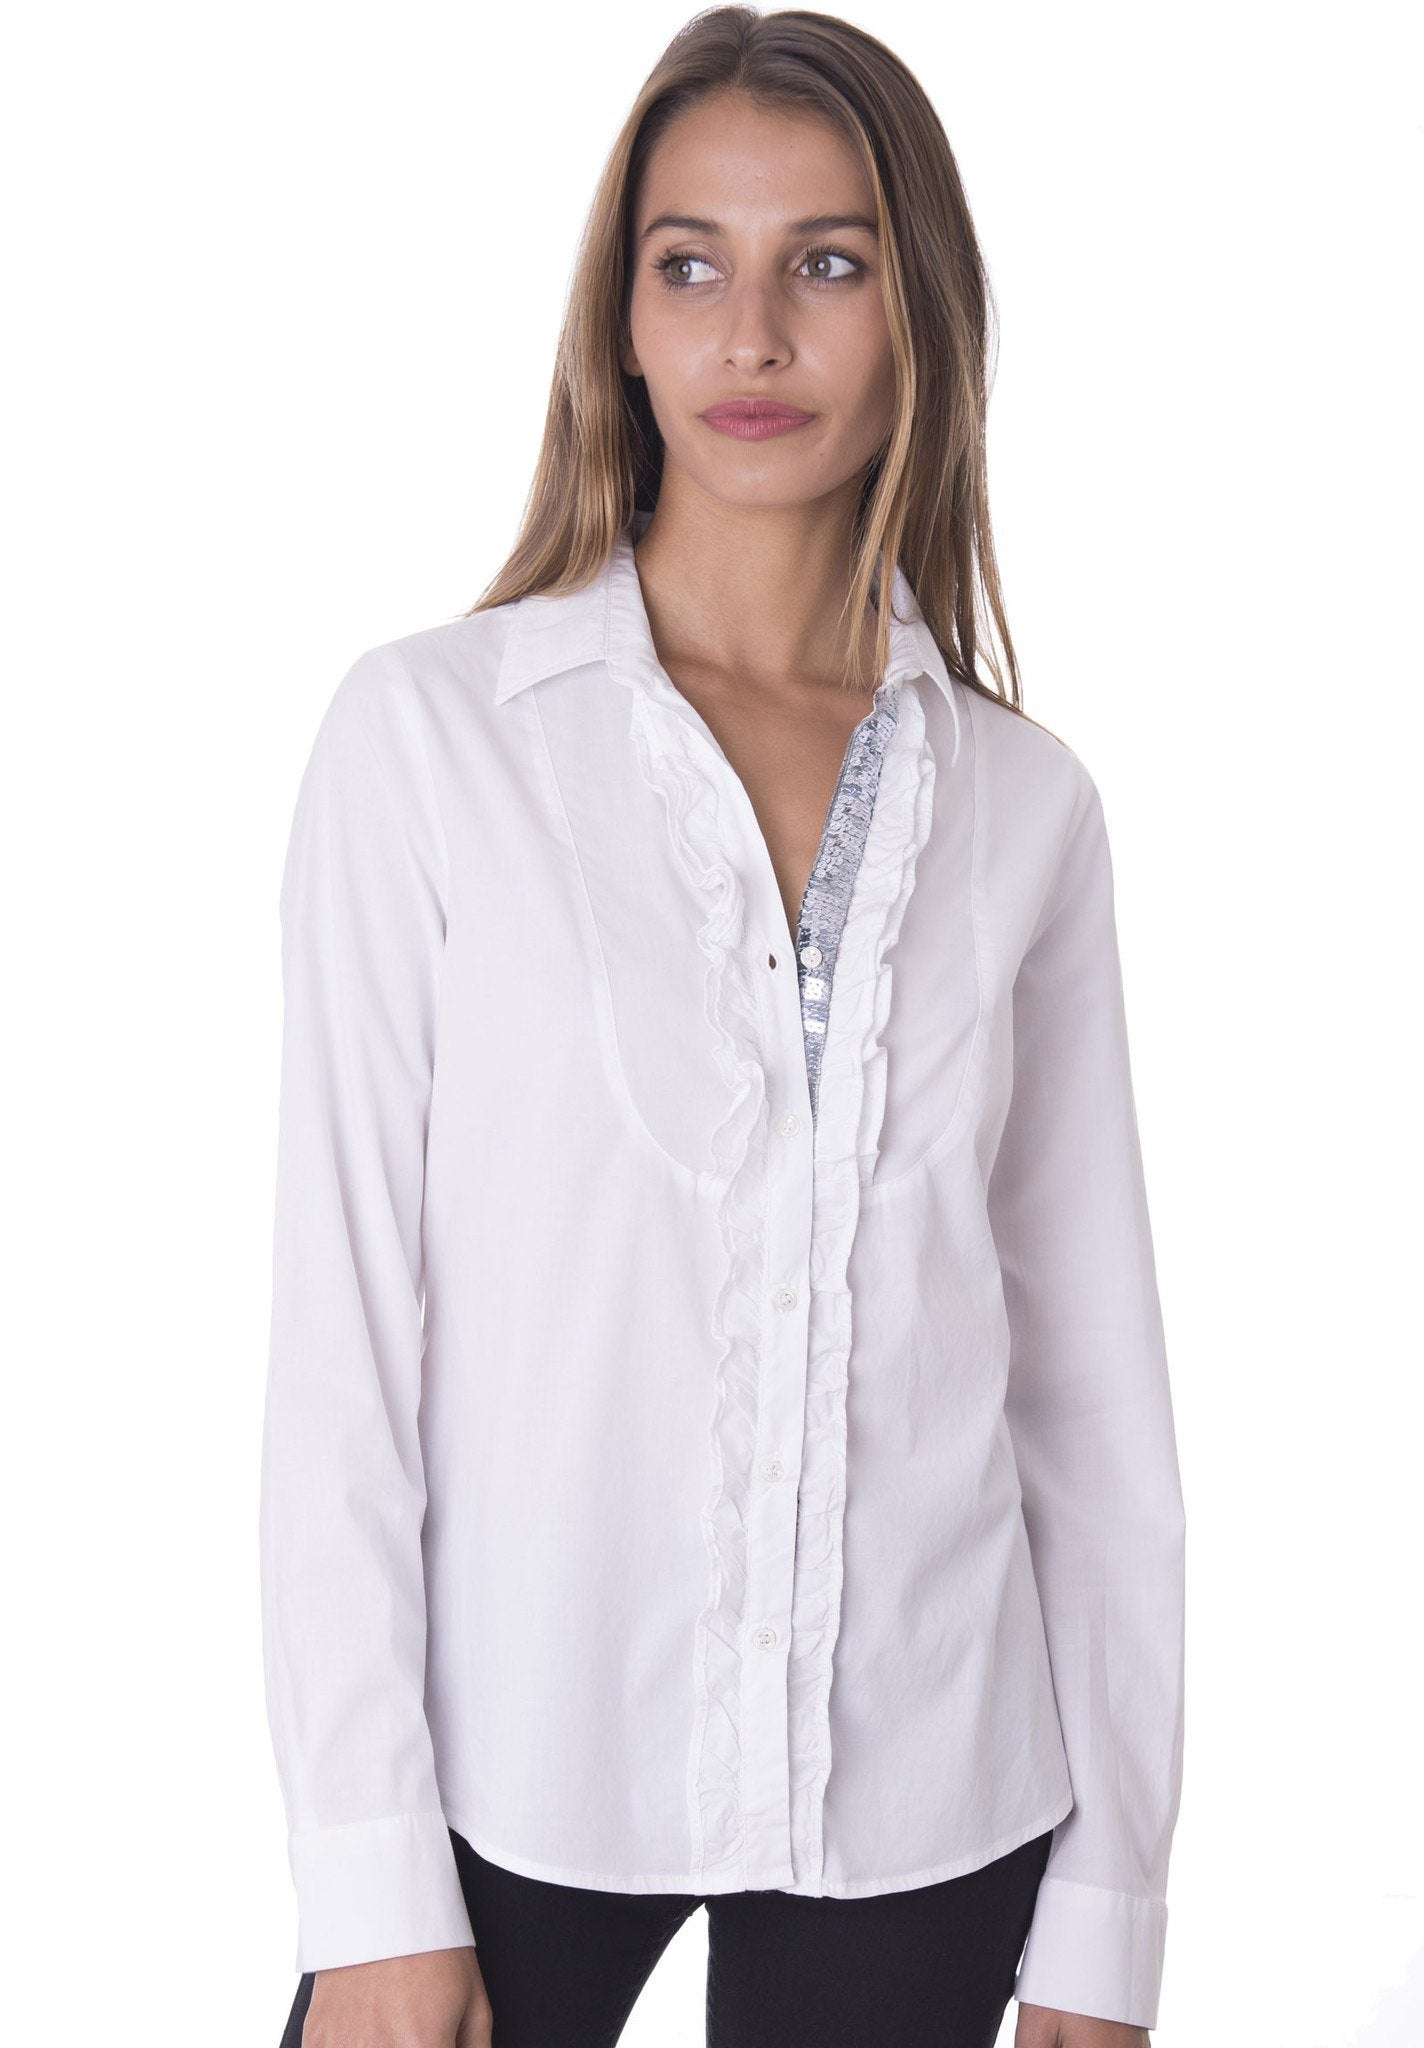 Grey Paillettes White Ruffled shirt